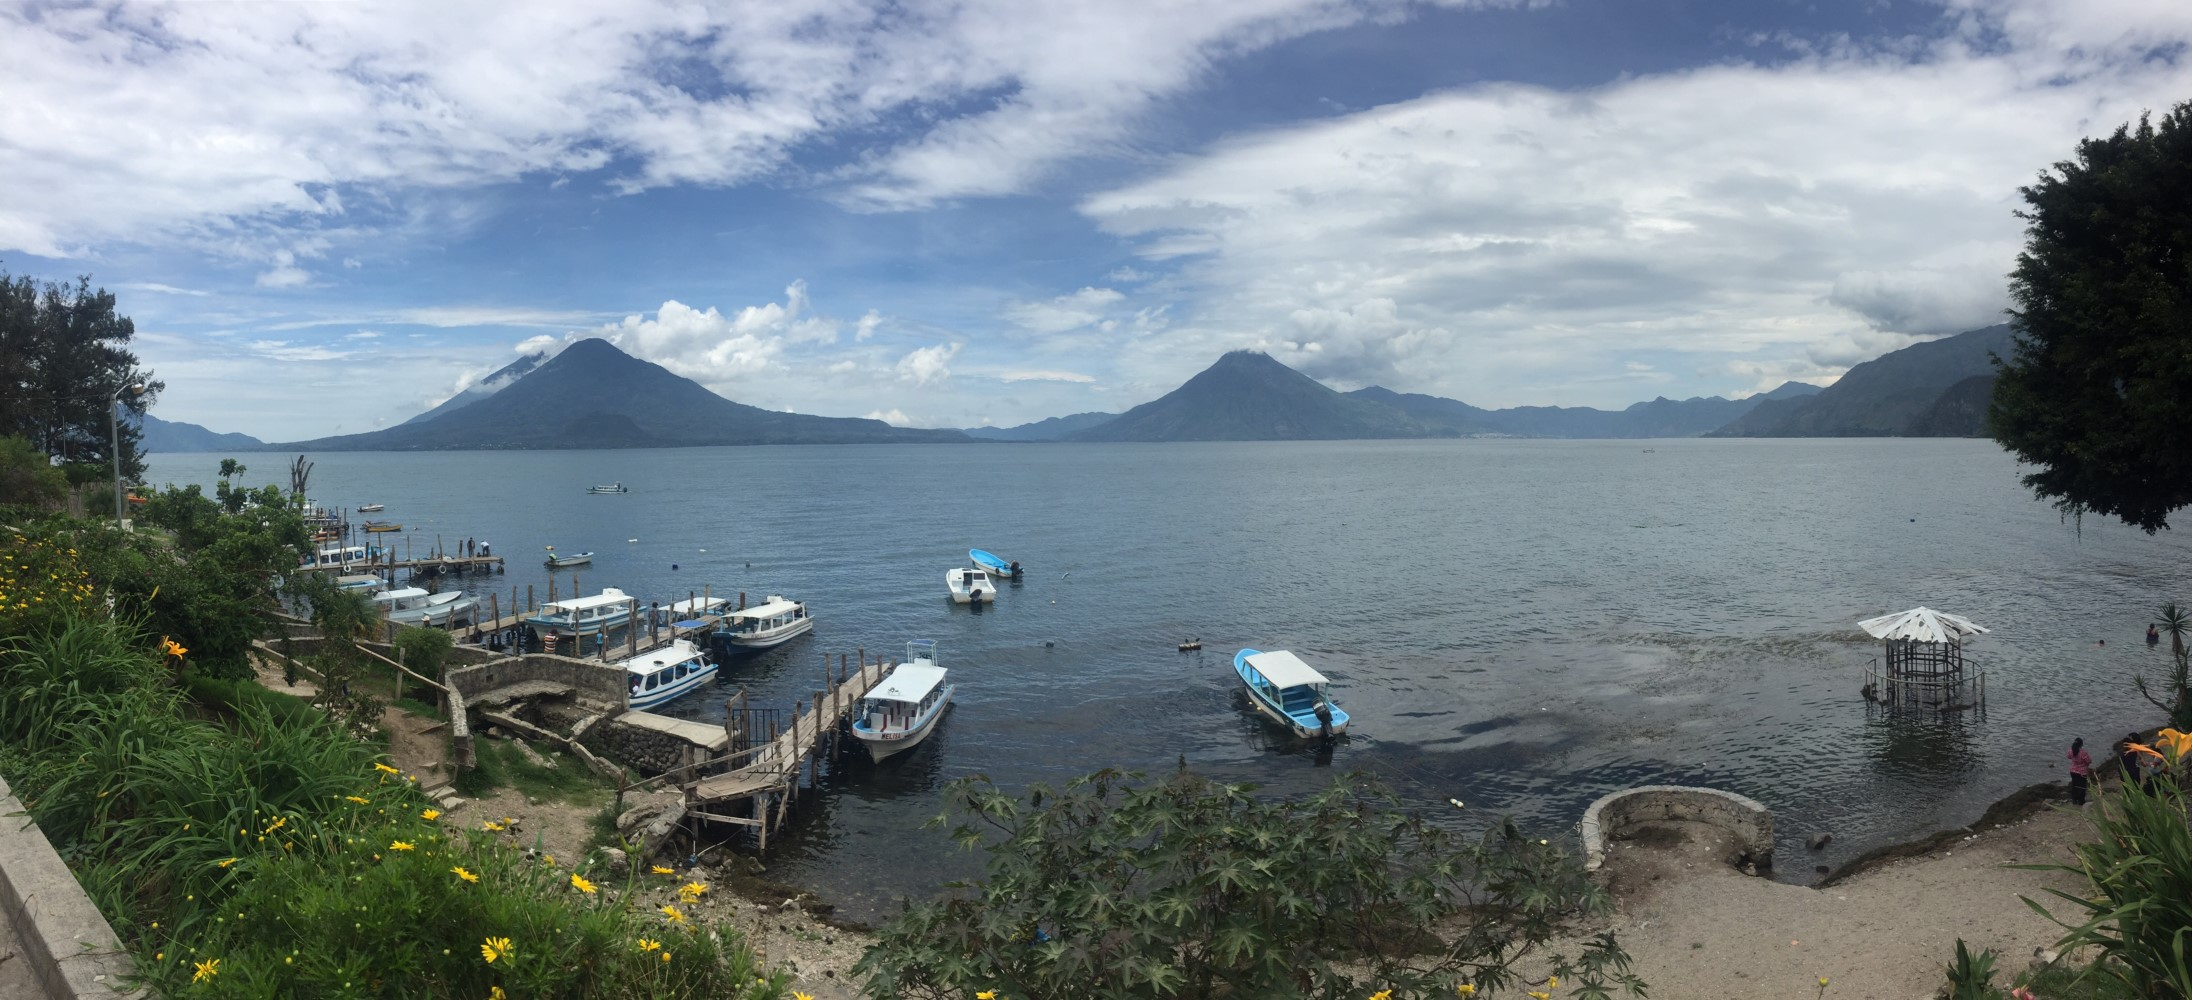 Views of Lake Atitlan